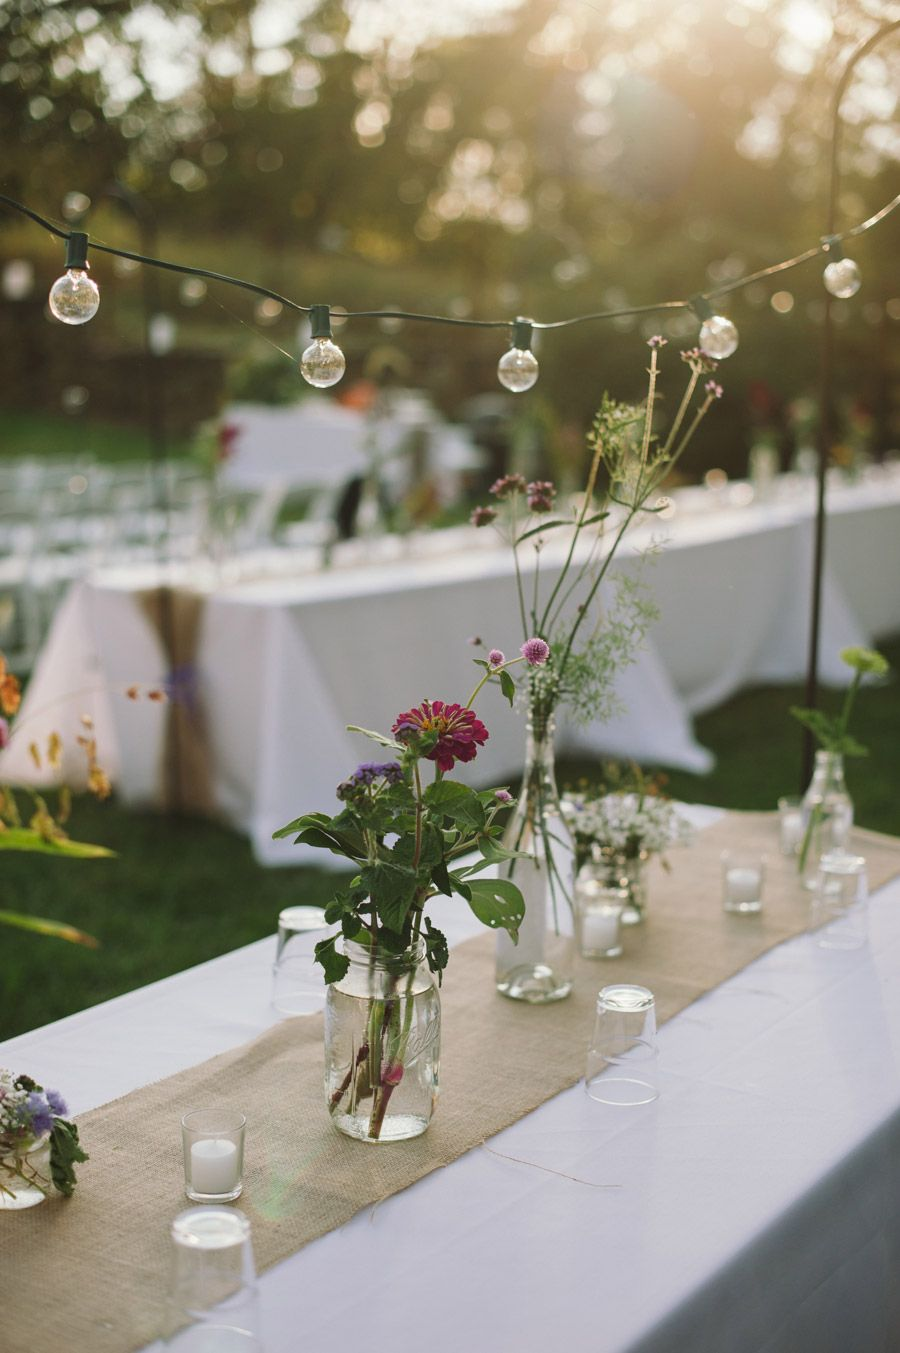 Light Garlands and Table Decoration